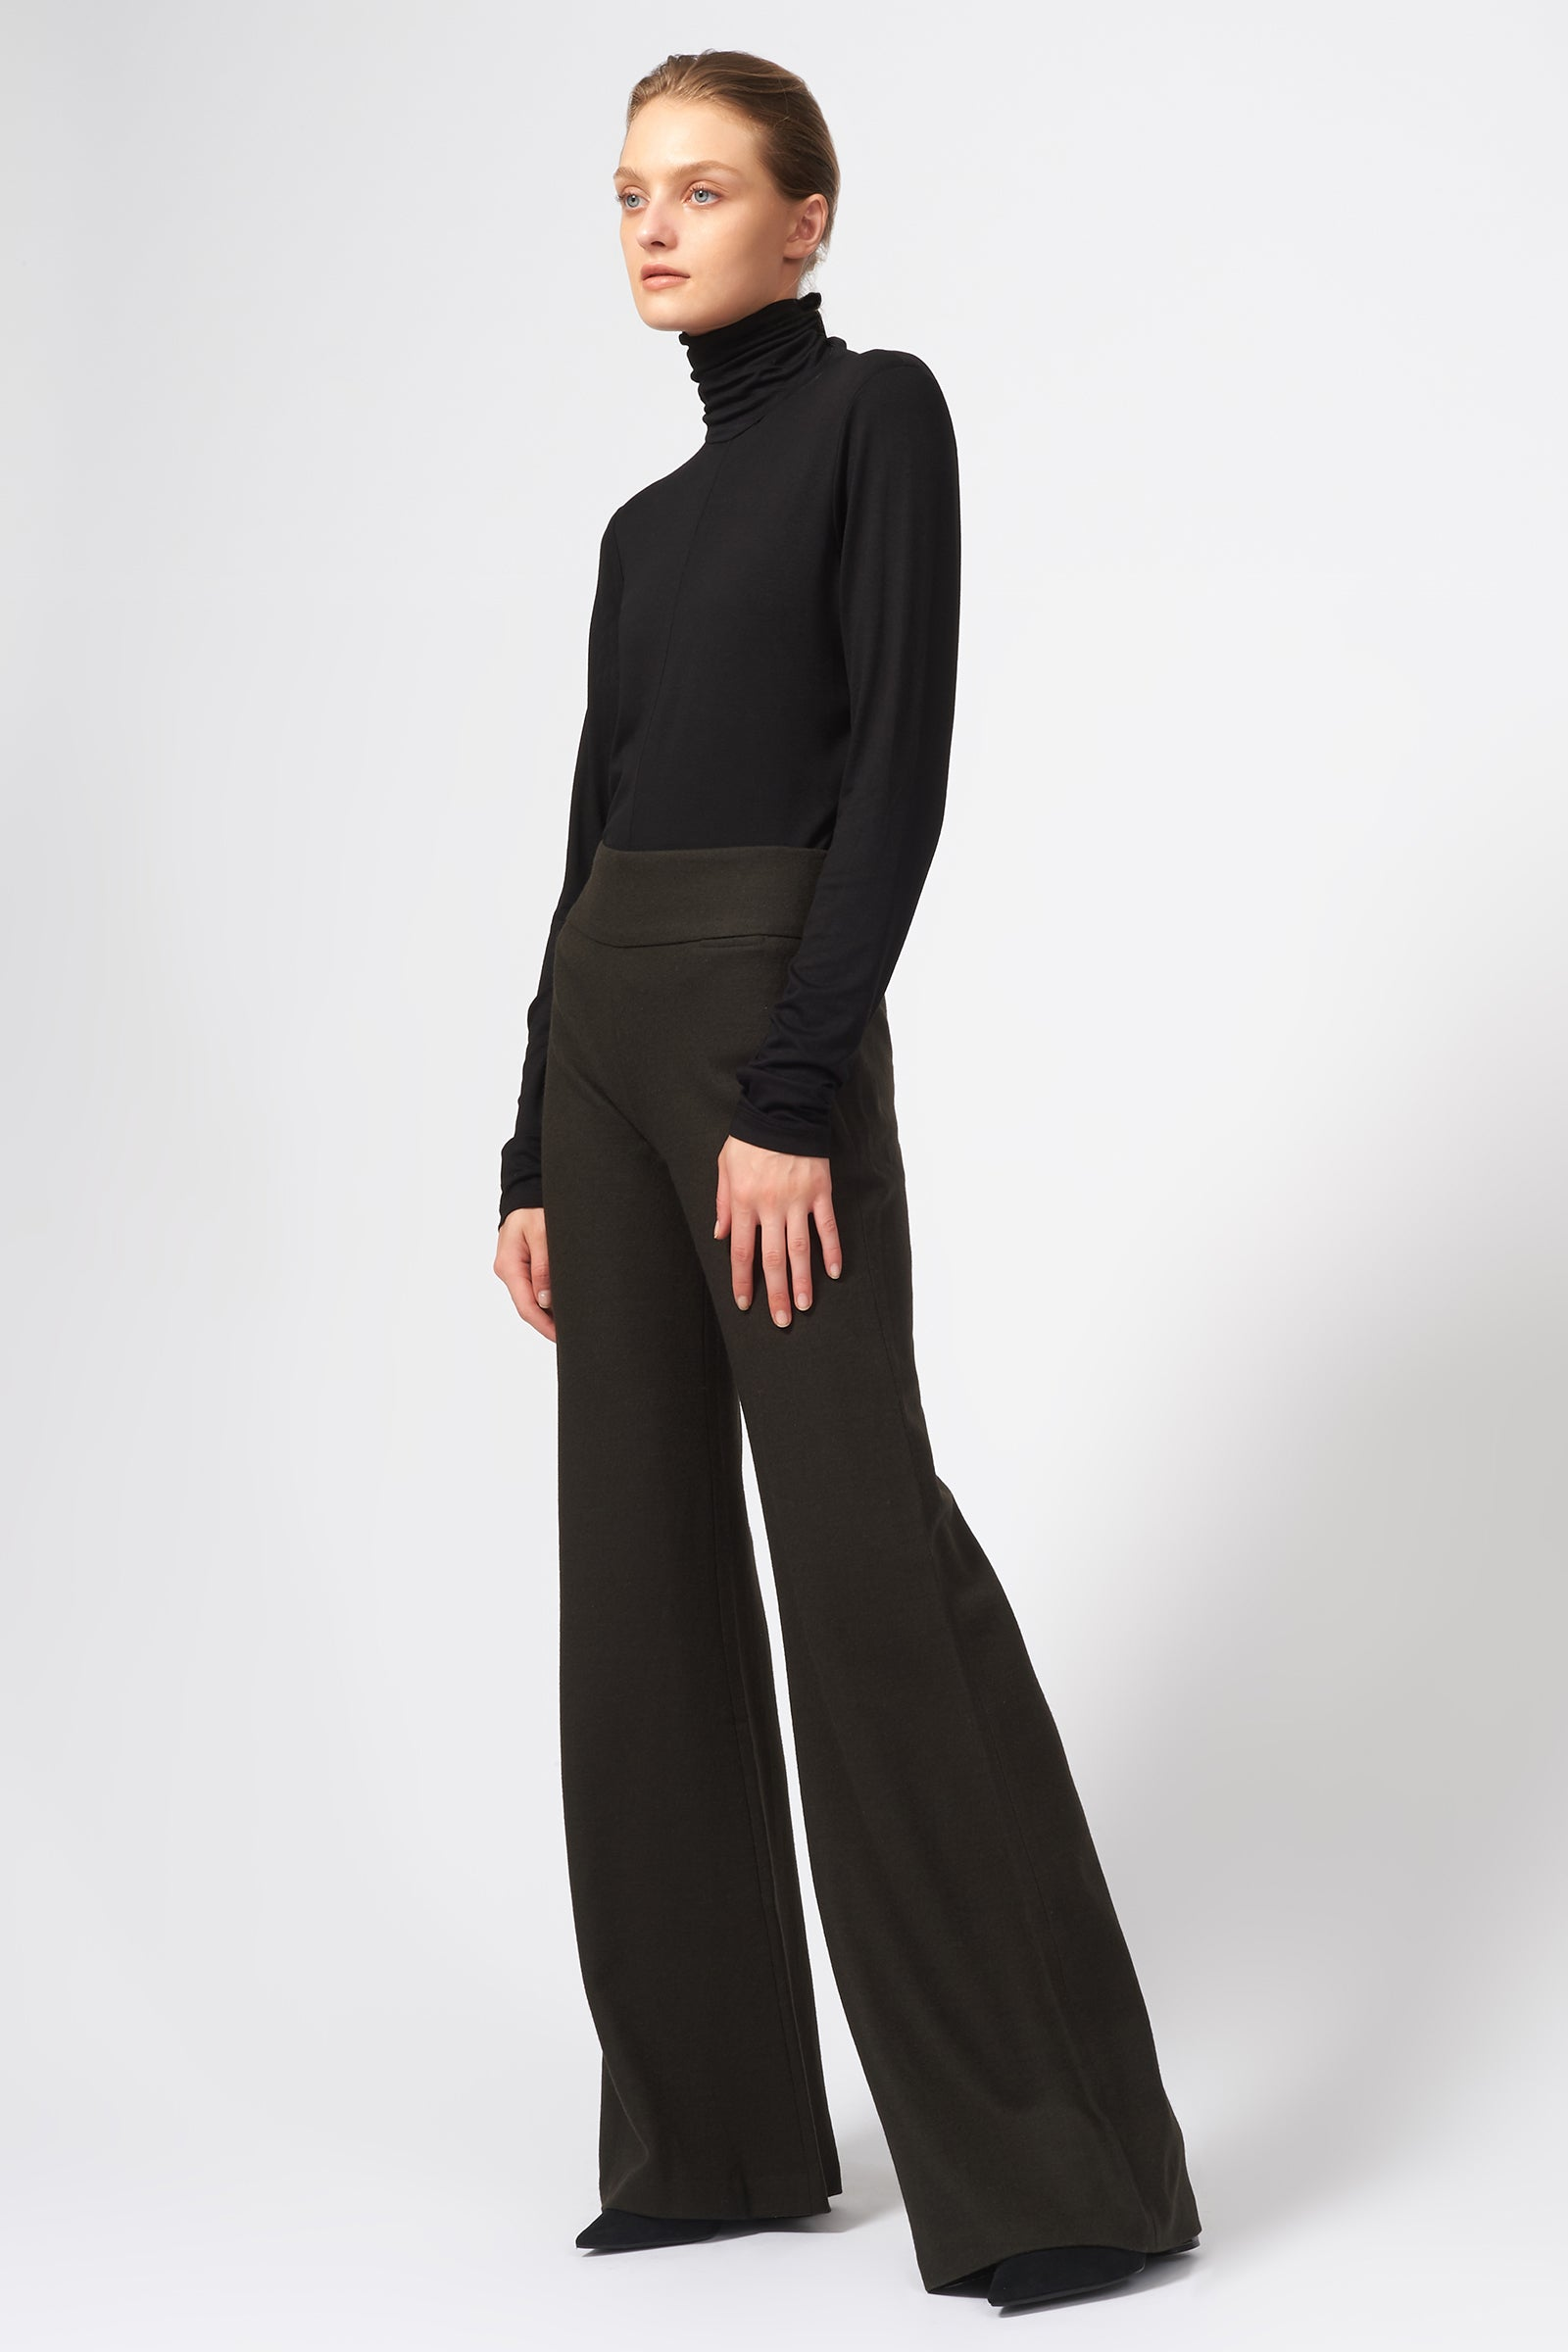 Kal Rieman Felted Jersey Wide Leg Pant in Espresso on Model Full Front View